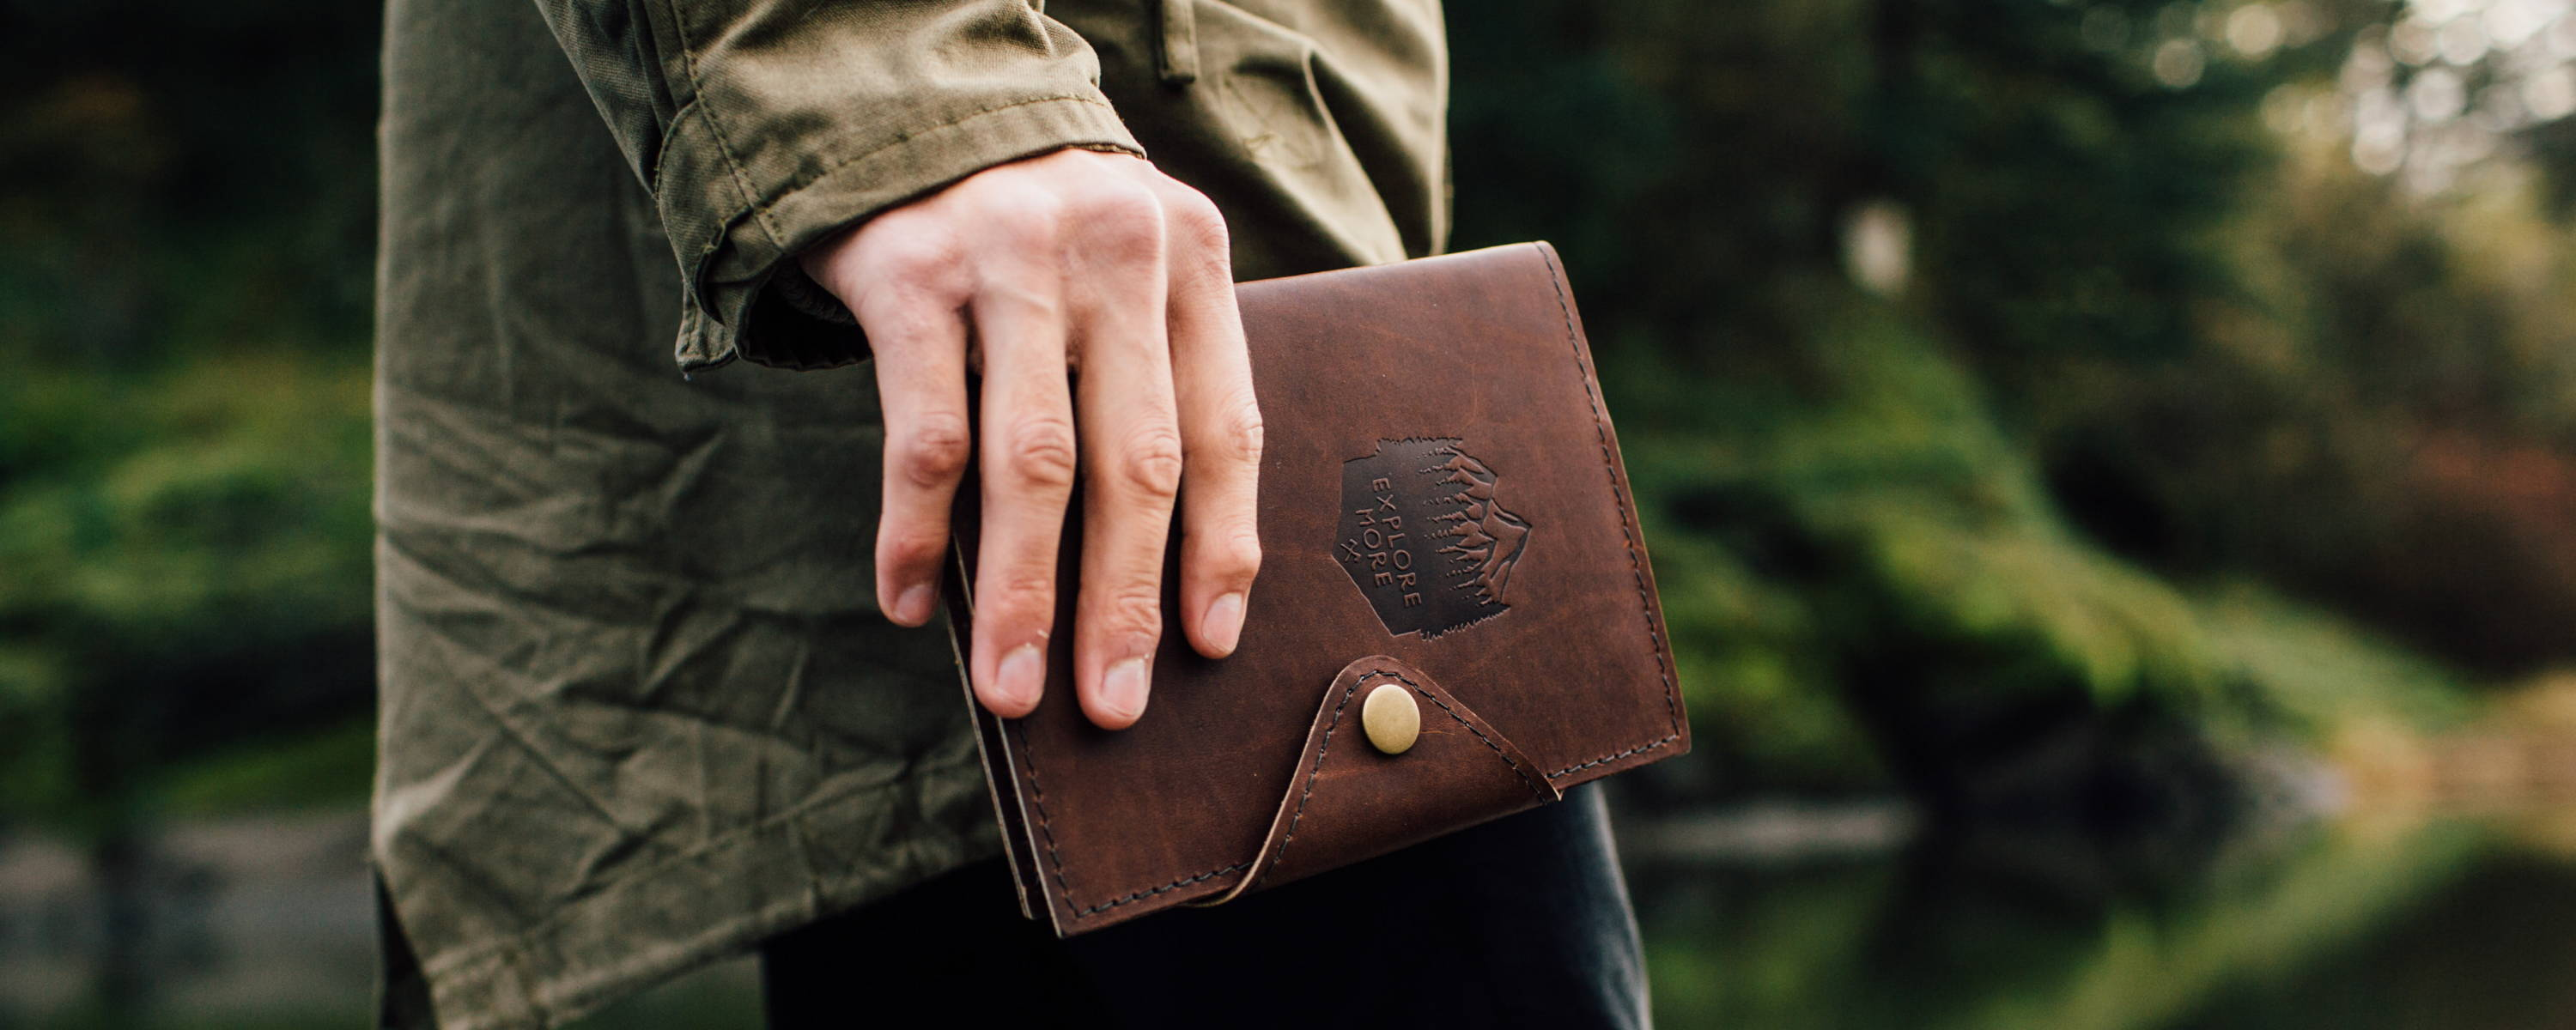 mans hand holding leather snap journal in forest scene